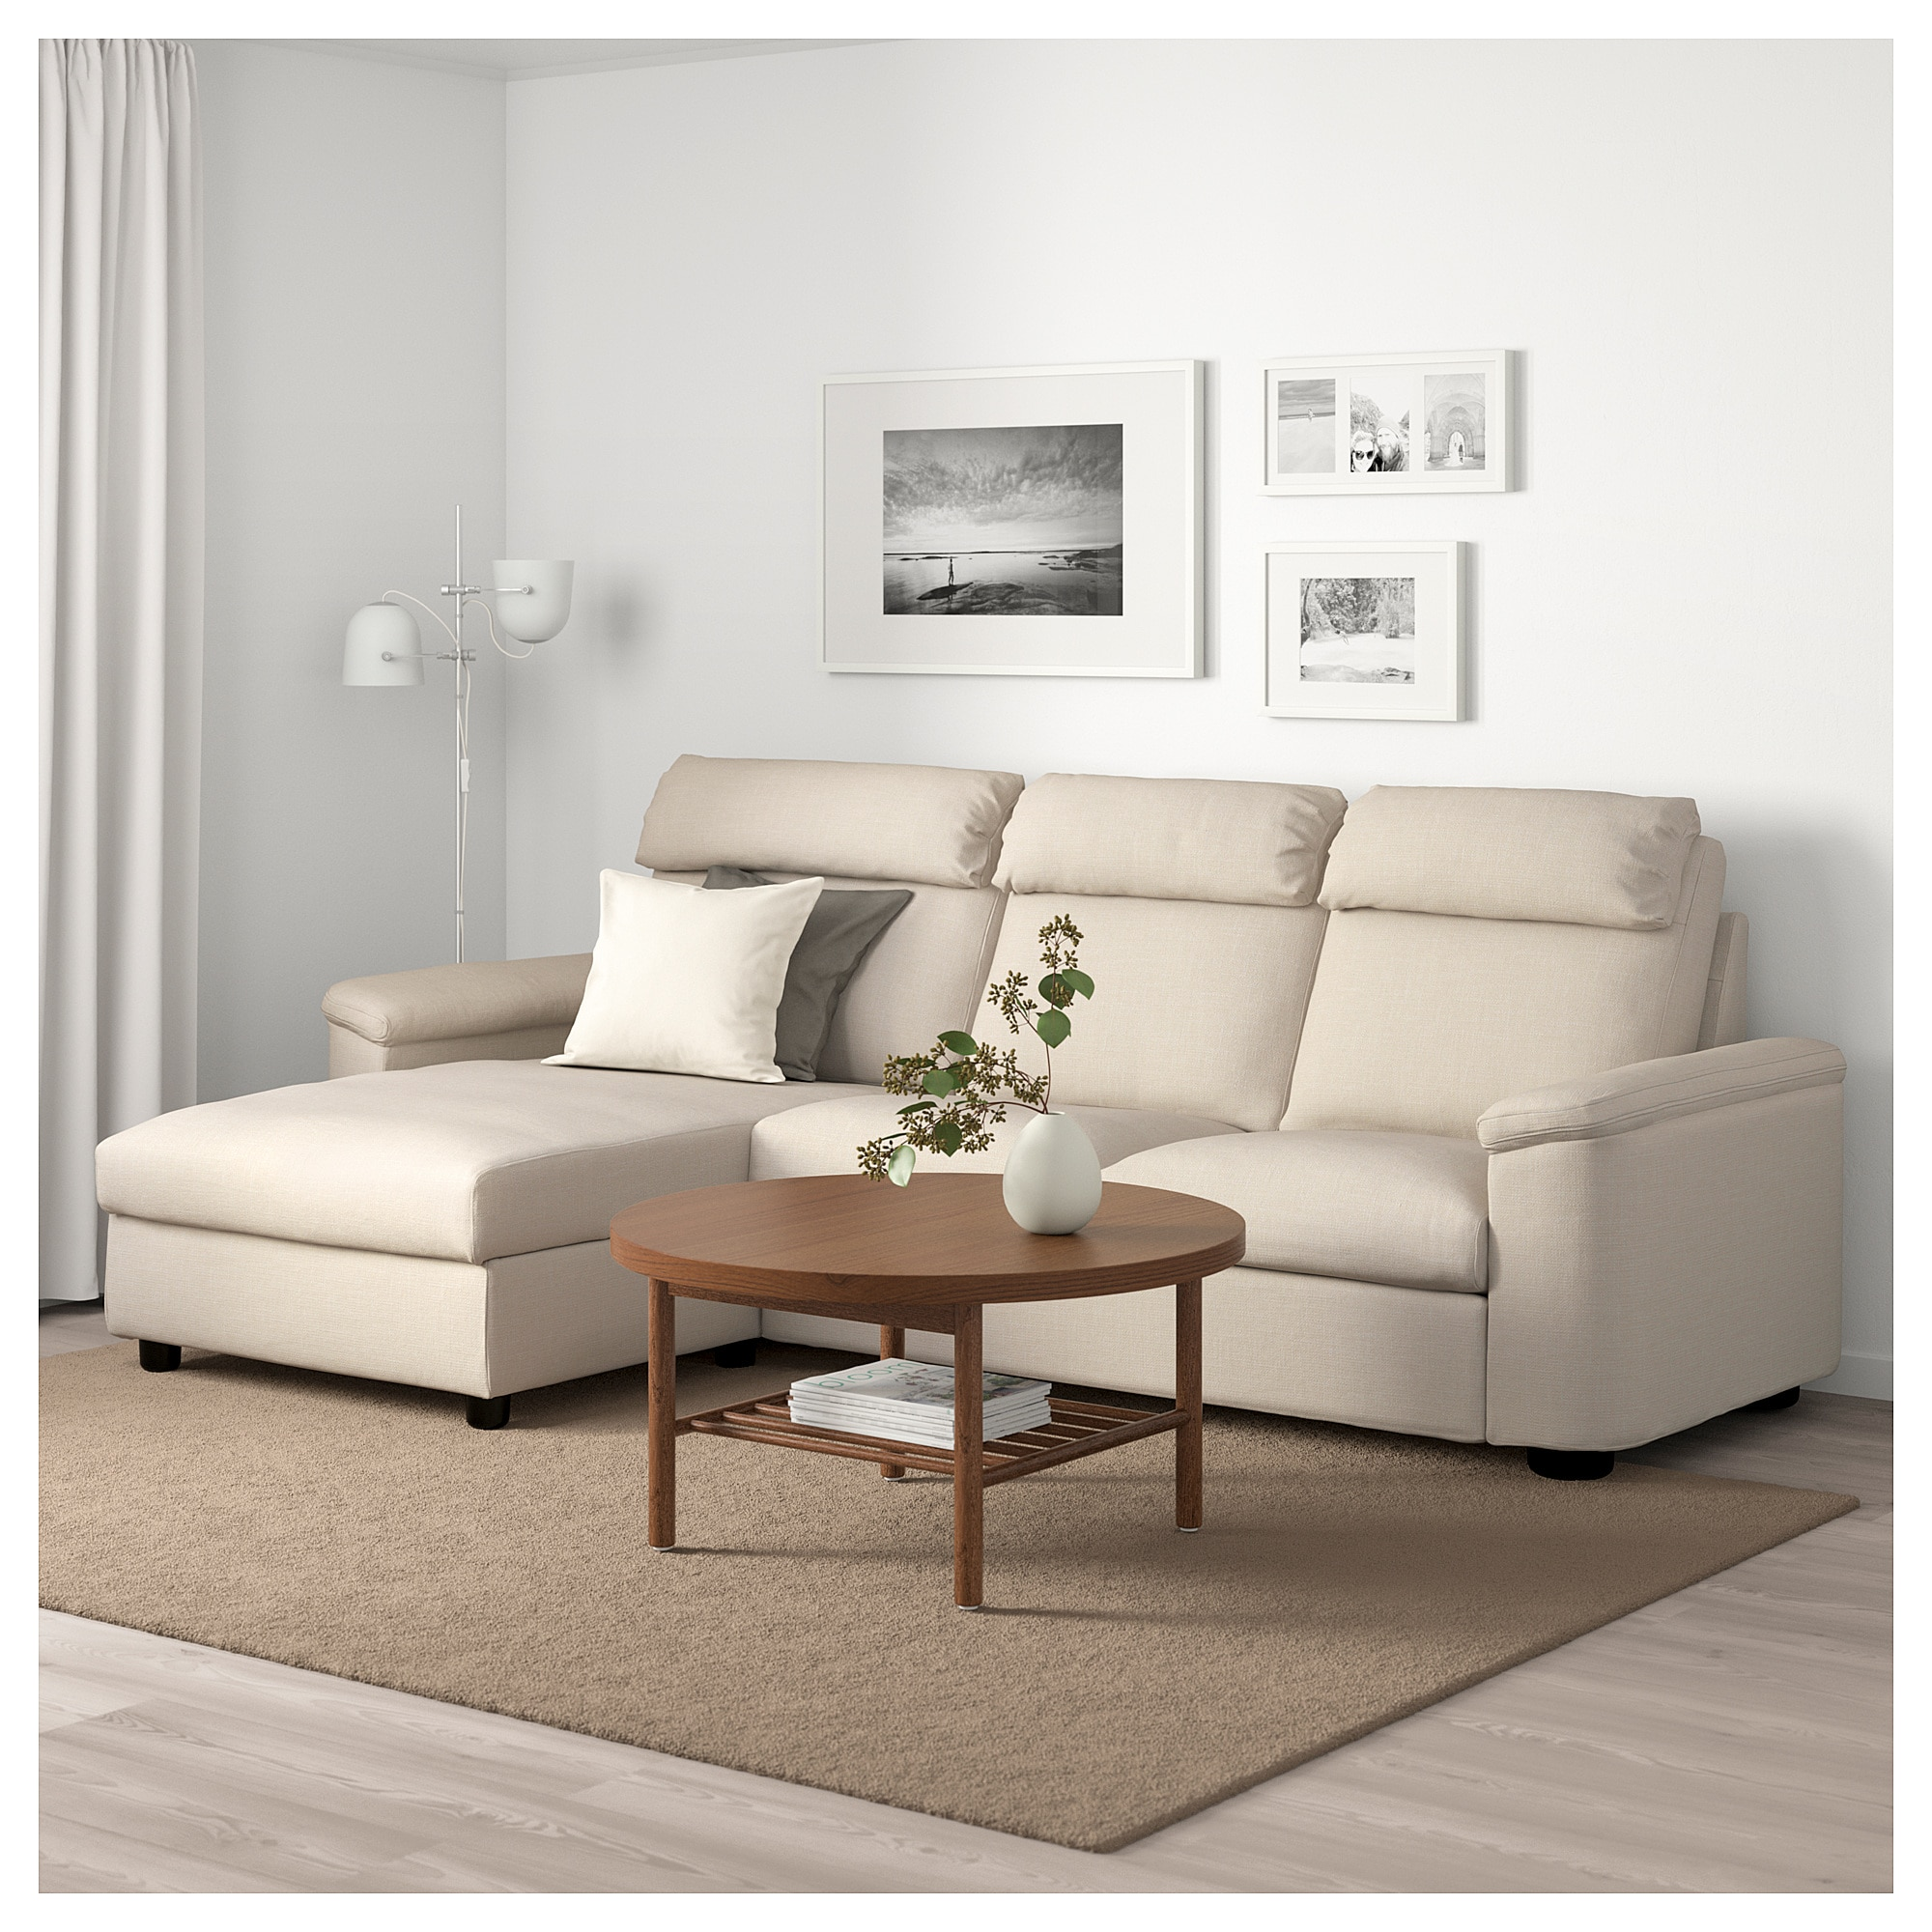 Ikea Lidhult Sofa With Chaise Gassebol Light Beige Home Sofa